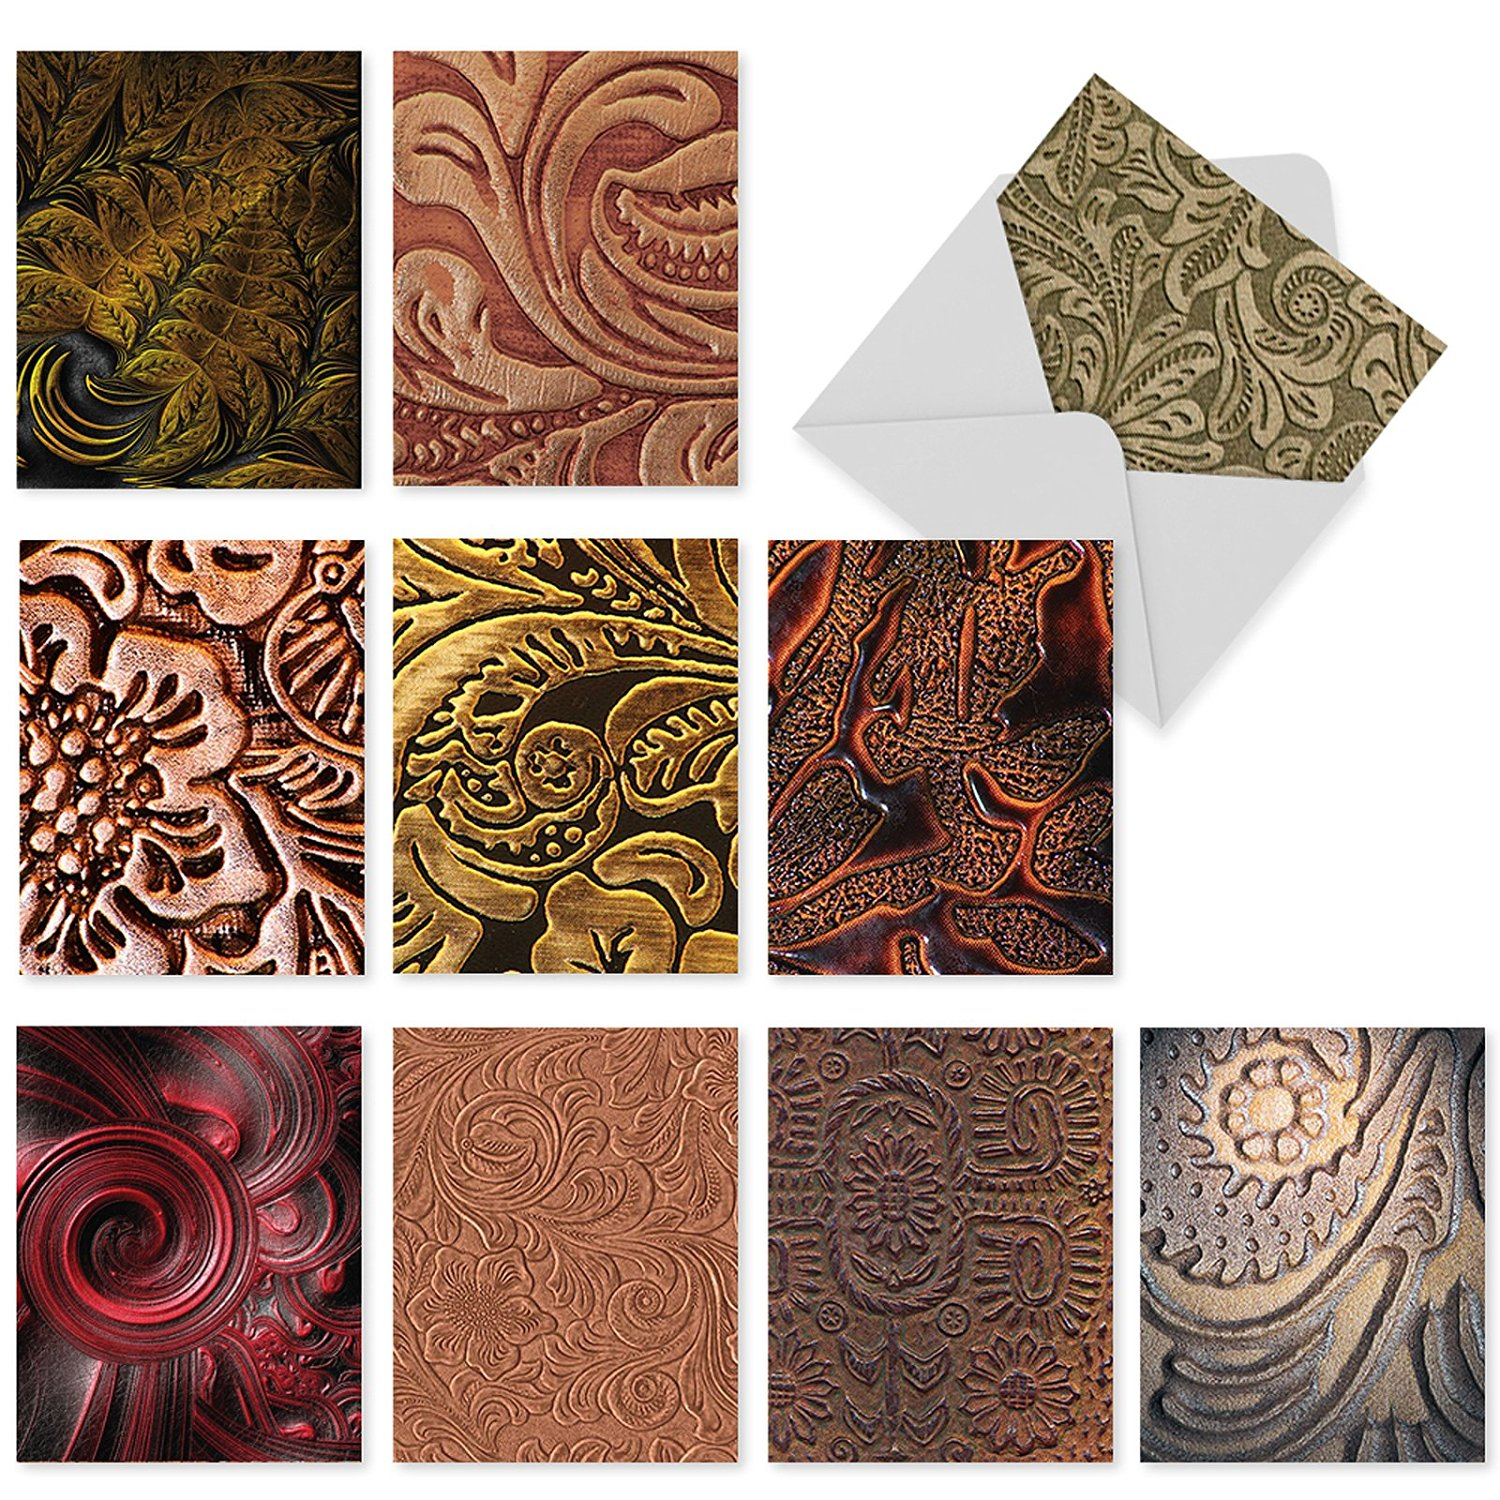 M3011 Bound For Greatness: 10 Assorted Thank You Note Cards Feature the Fine Art of Tooled Leather, w/White Envelopes.